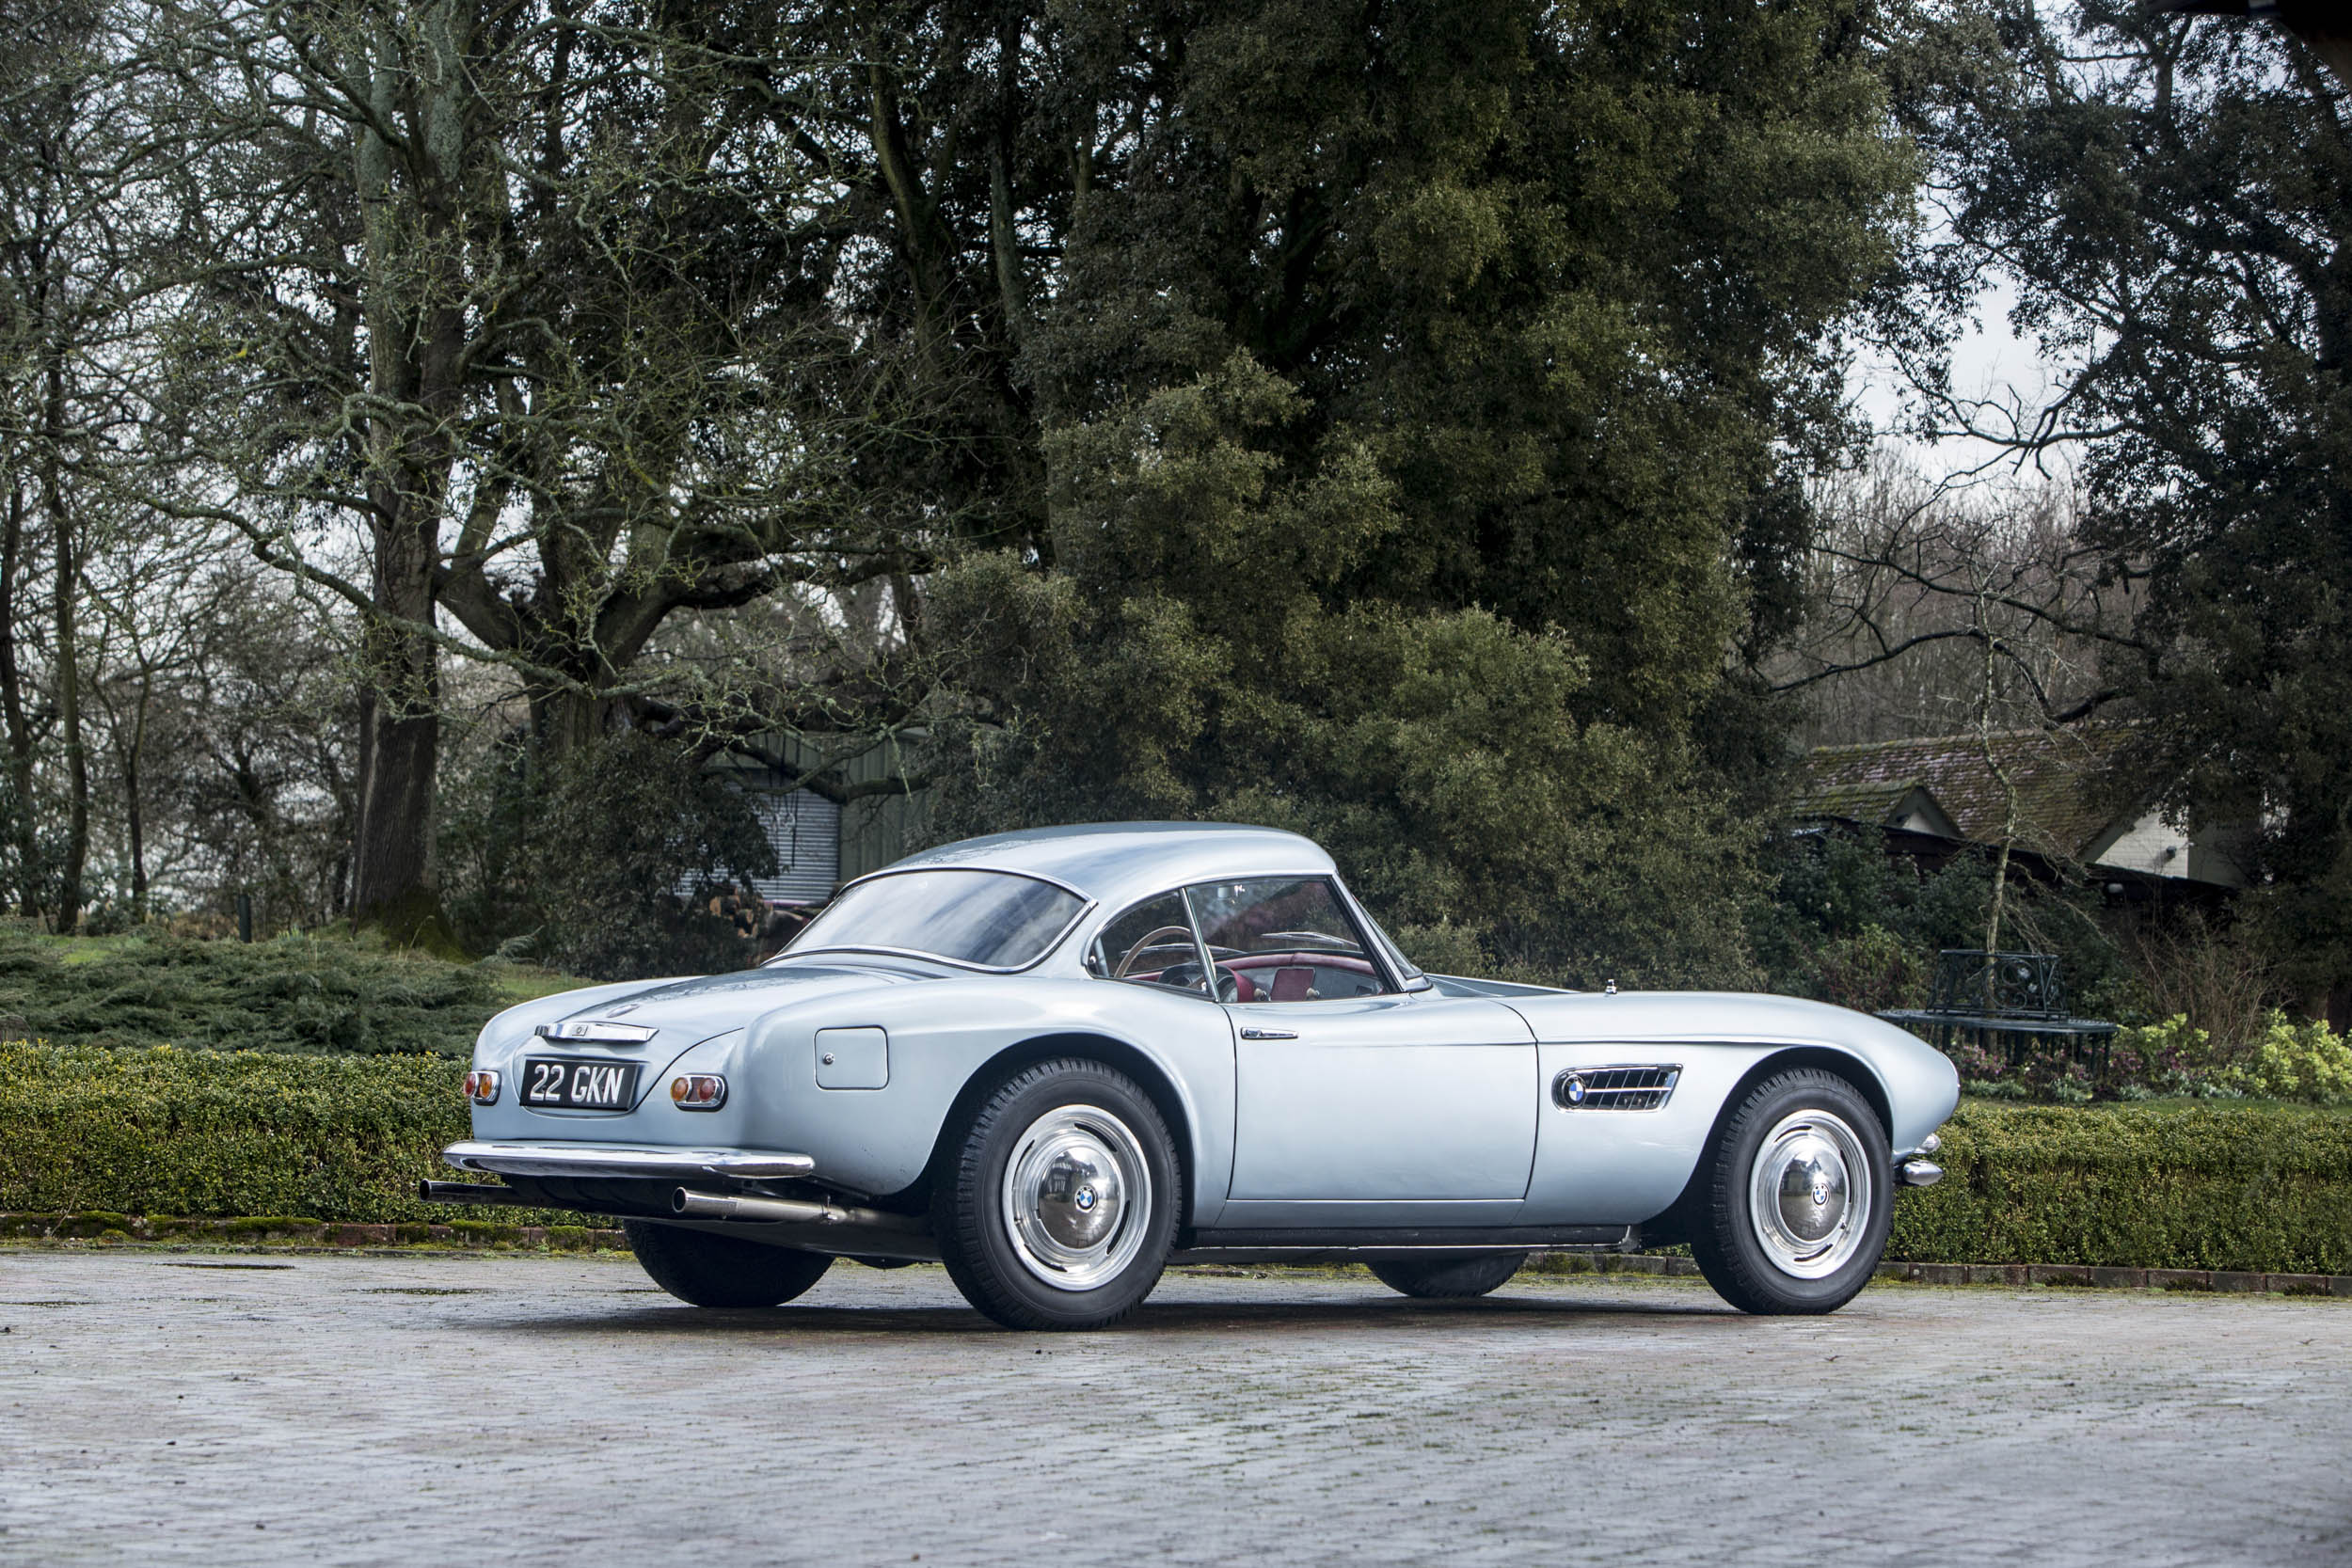 John Surtees' 1957 BMW 507 rear 3/4